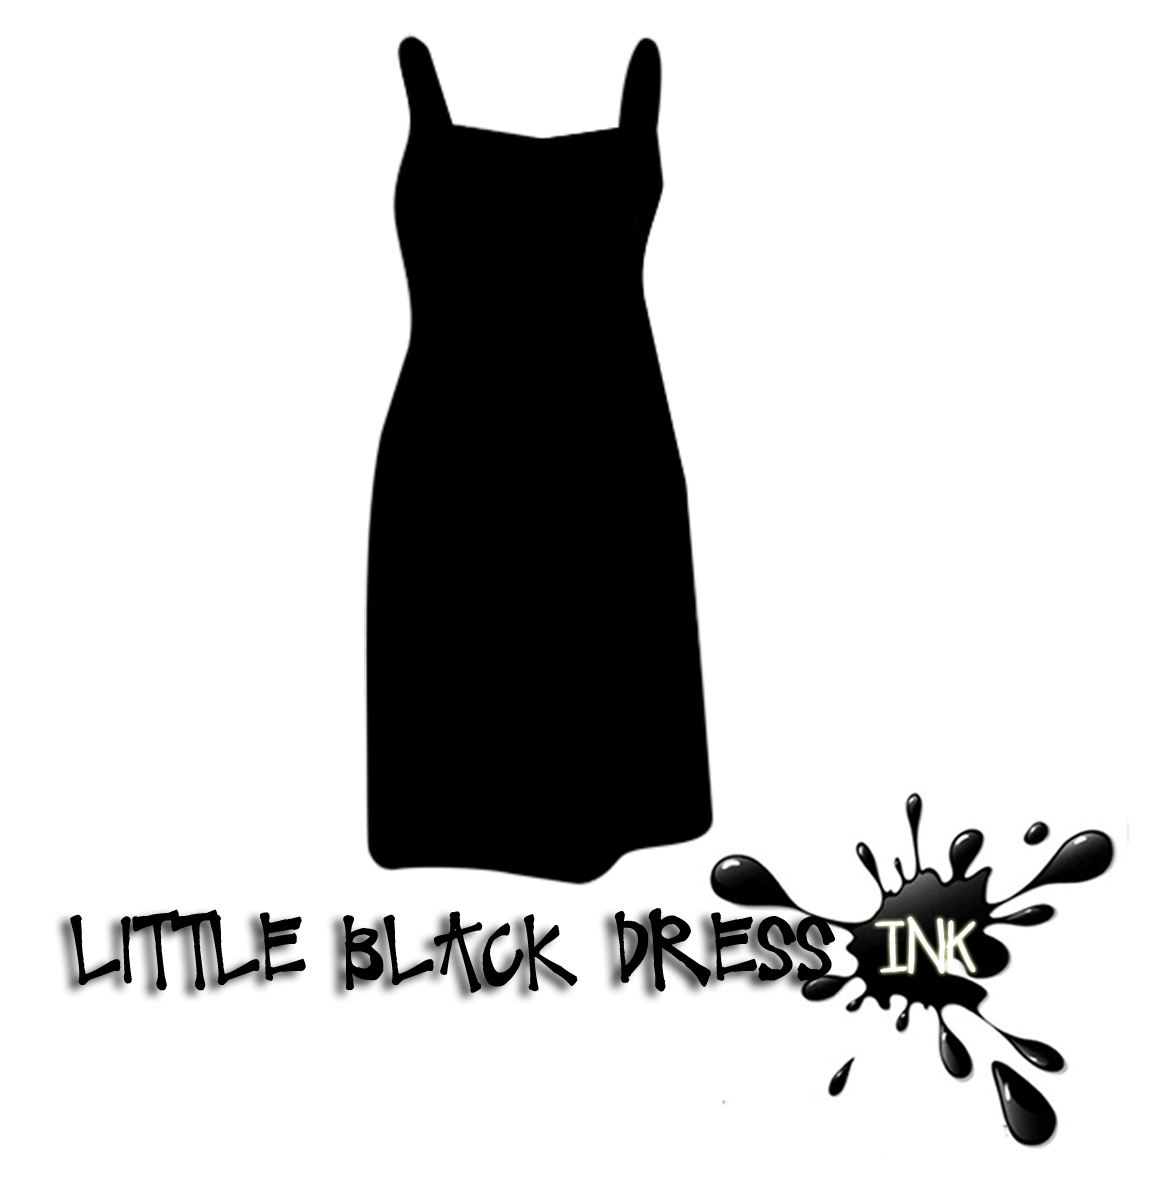 Little Black Dress INK